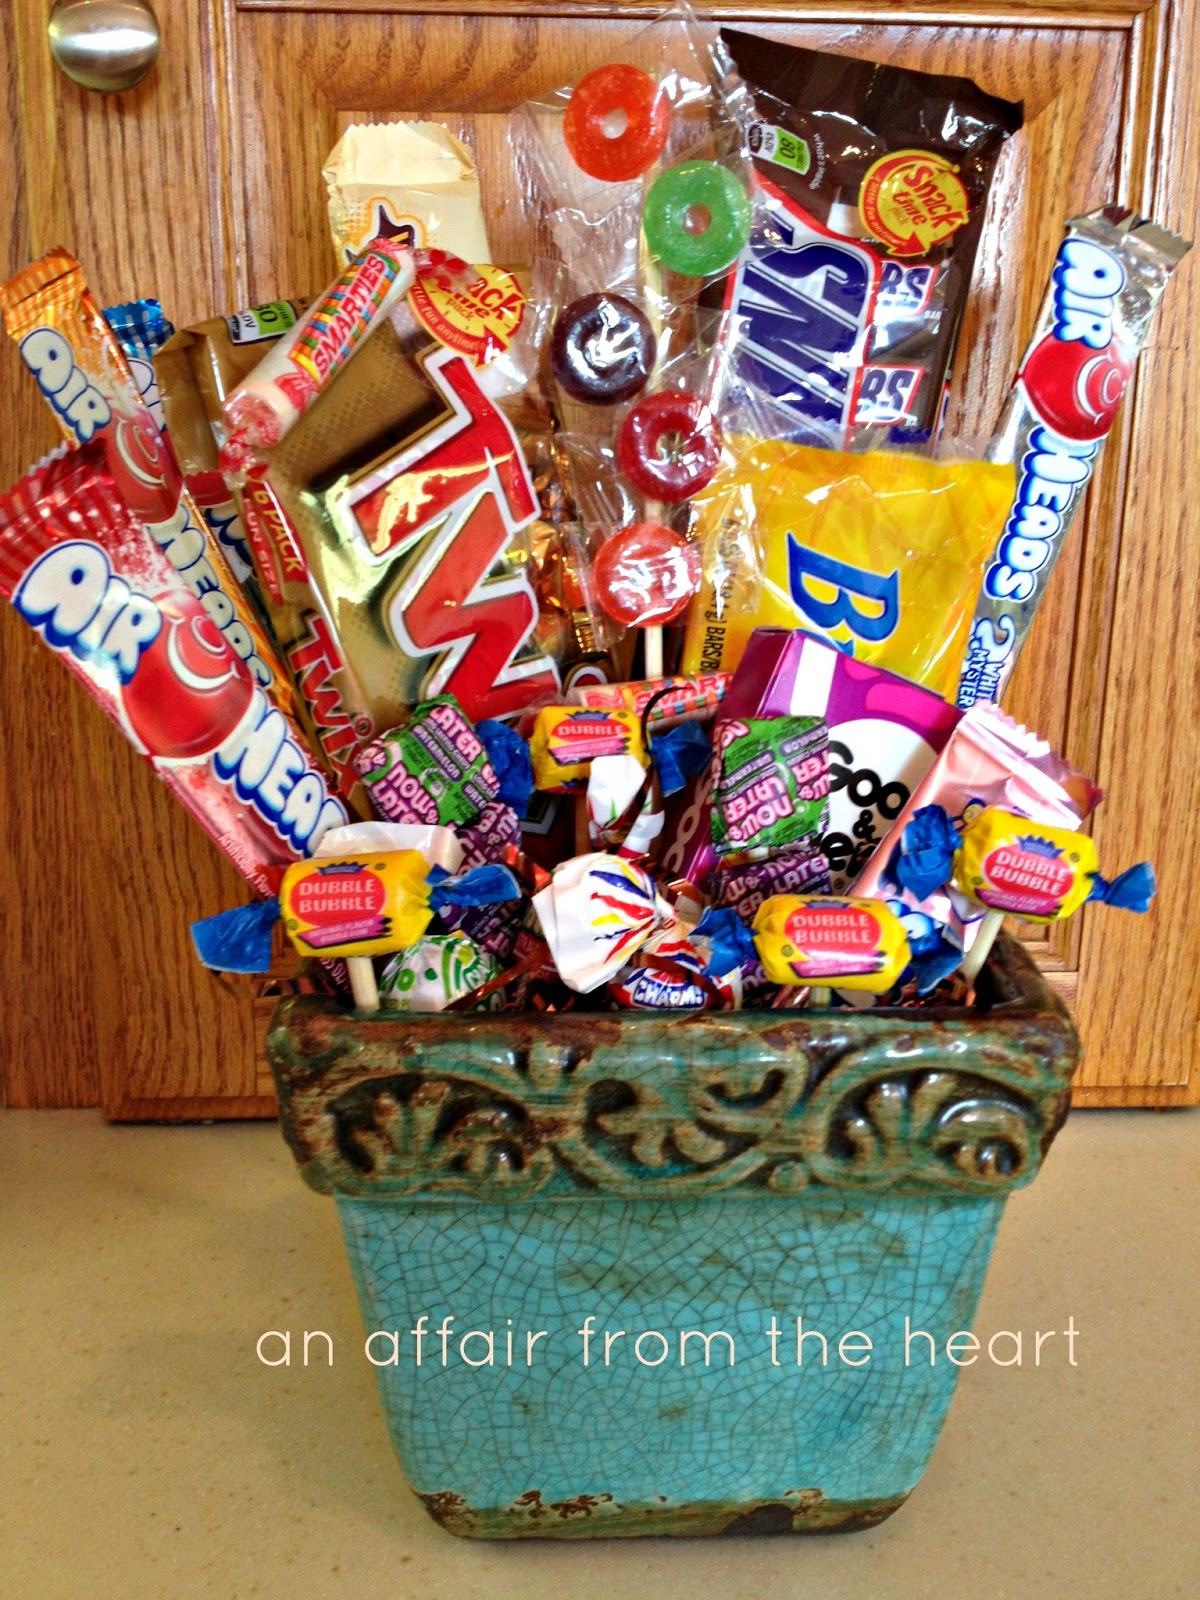 African Desserts 50th Birthday Candy Basket And Poem